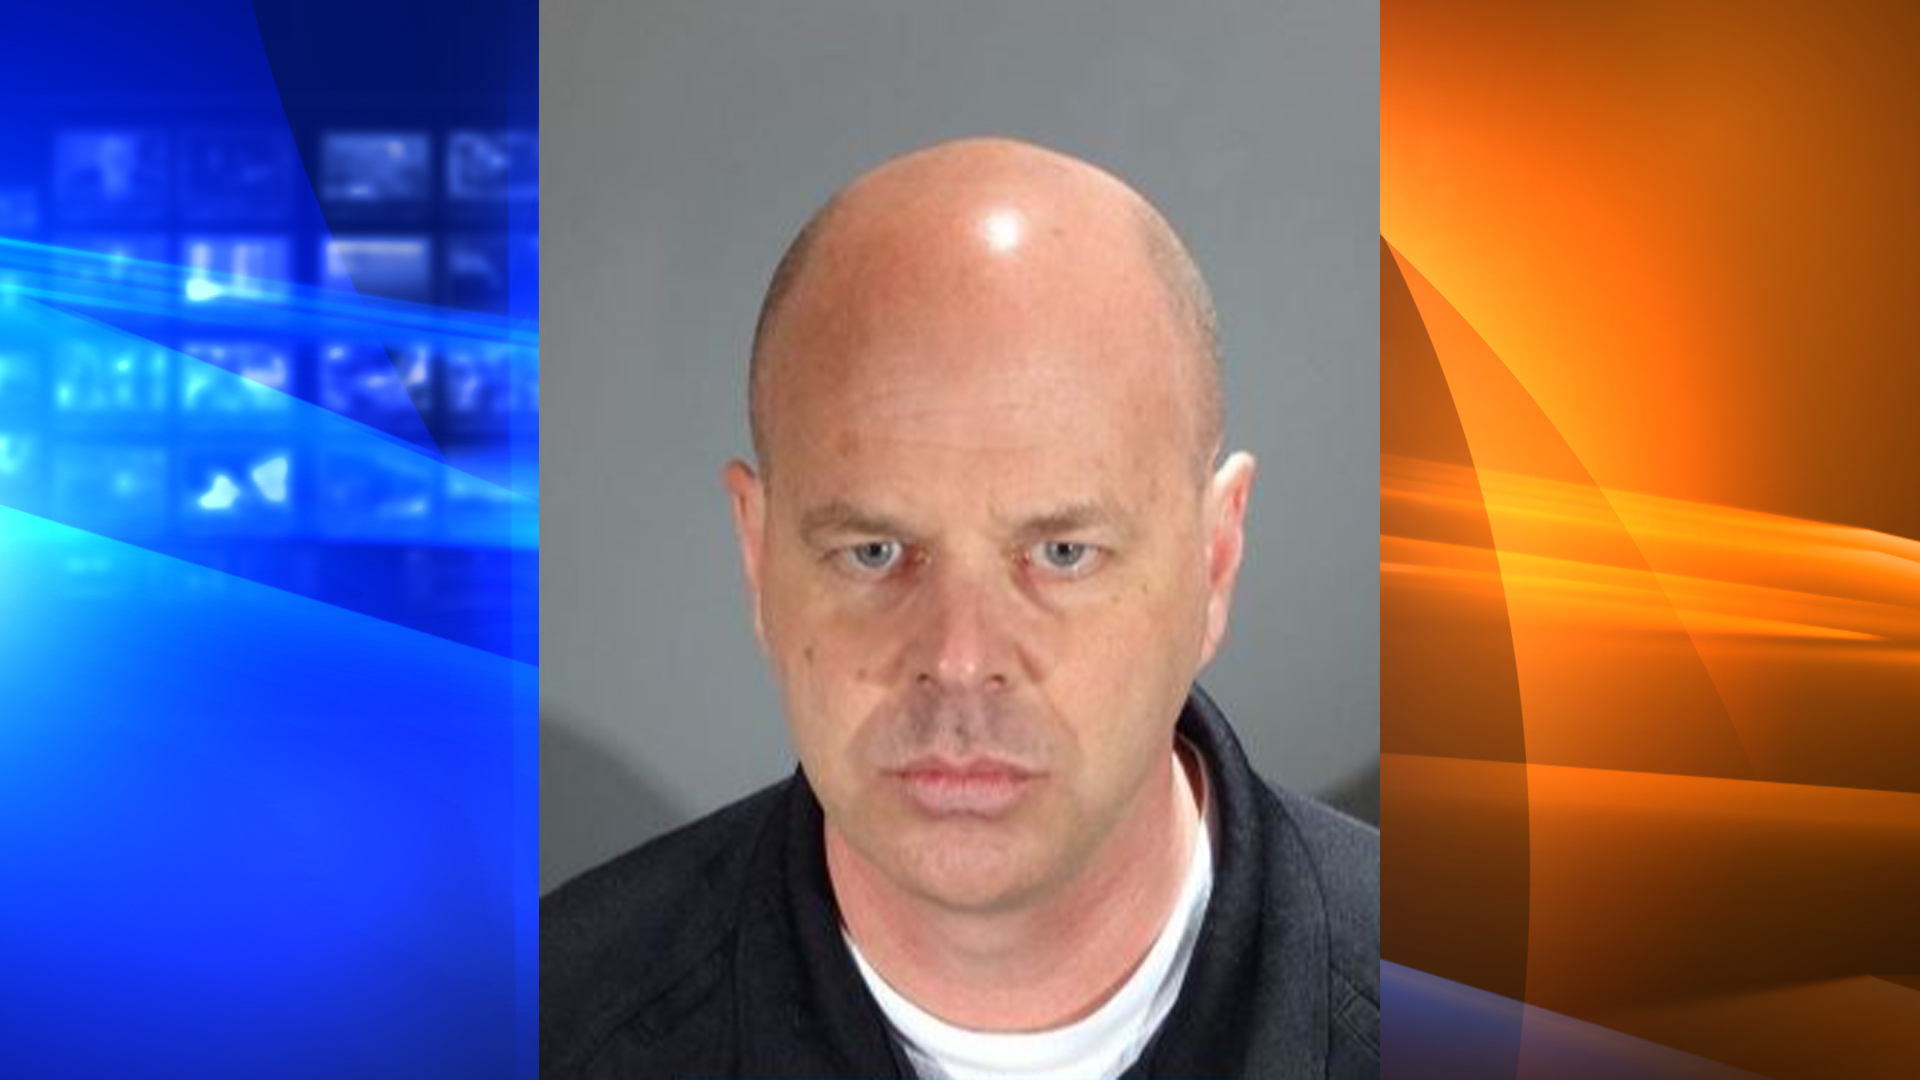 Eric Uller is shown in a photo released by the Los Angeles County Sheriff's Department on Oct. 25, 2018.